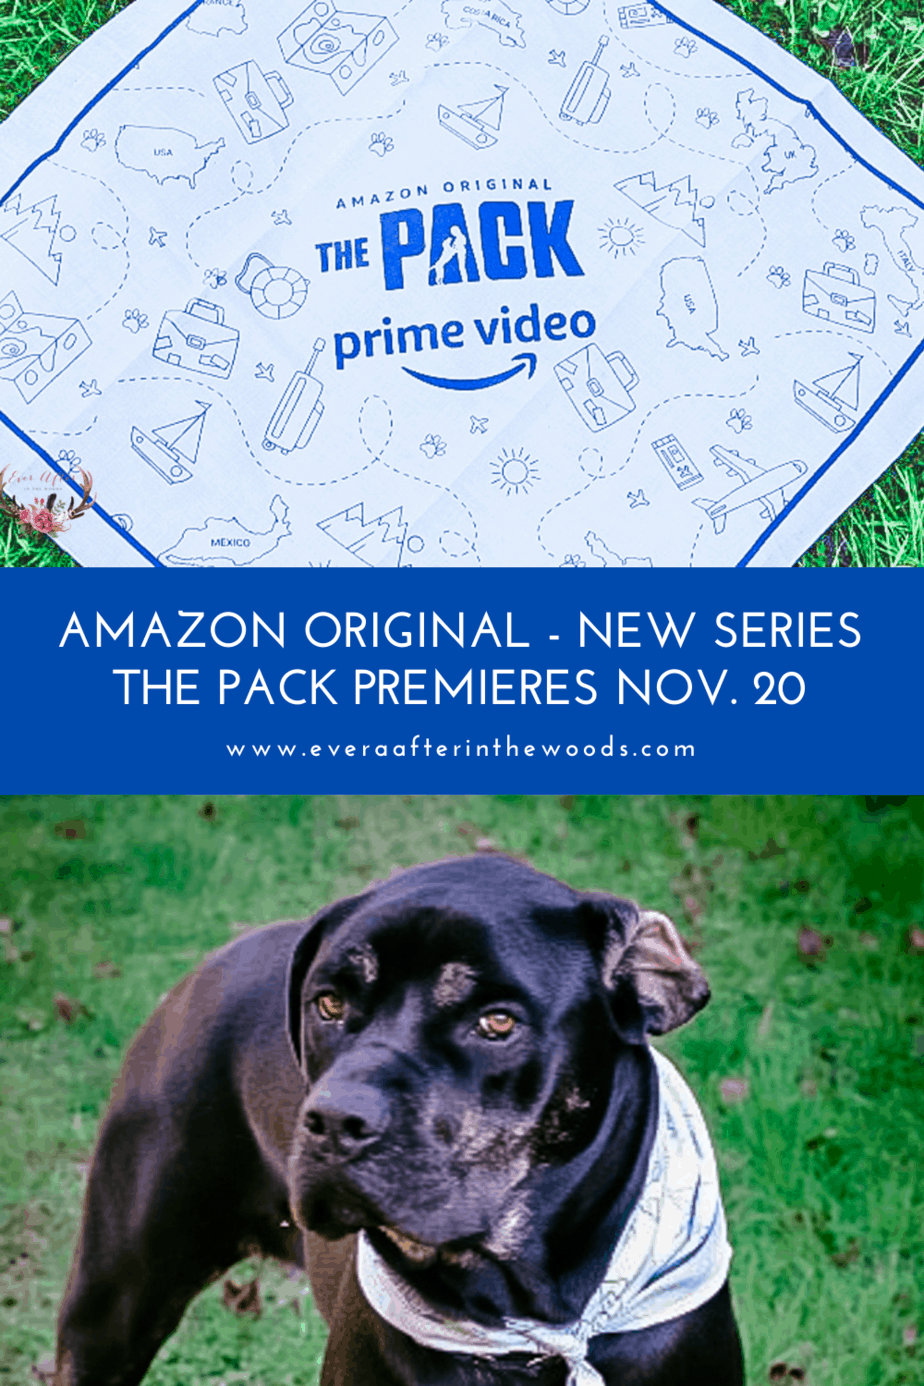 Watch The Pack on Amazon Prime Video, November 20th!